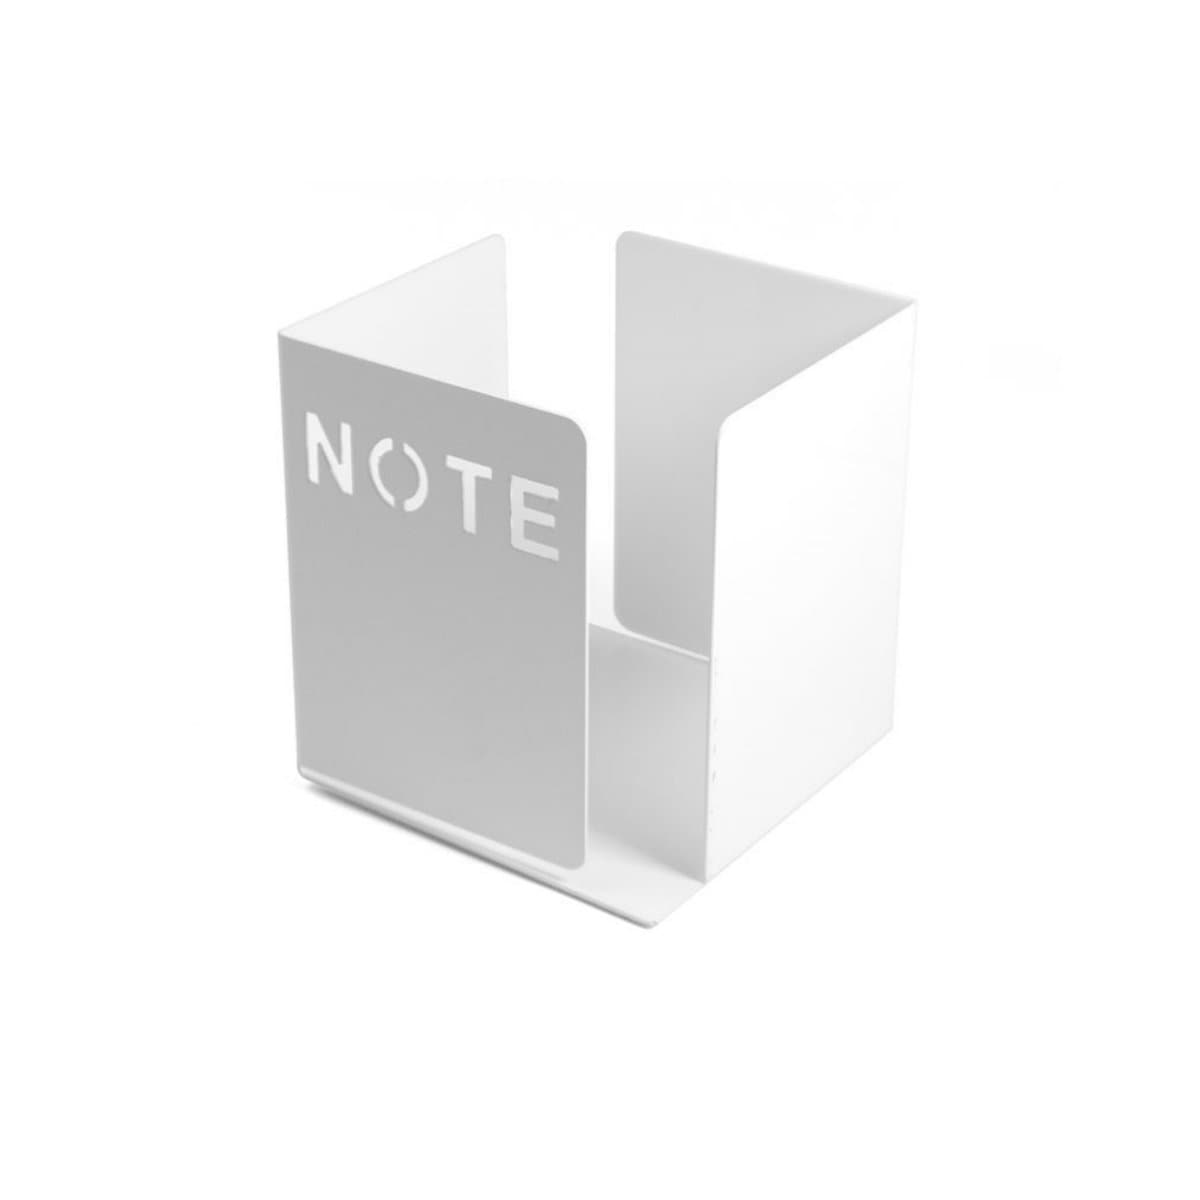 Trendform Memo Holder NOTE, White